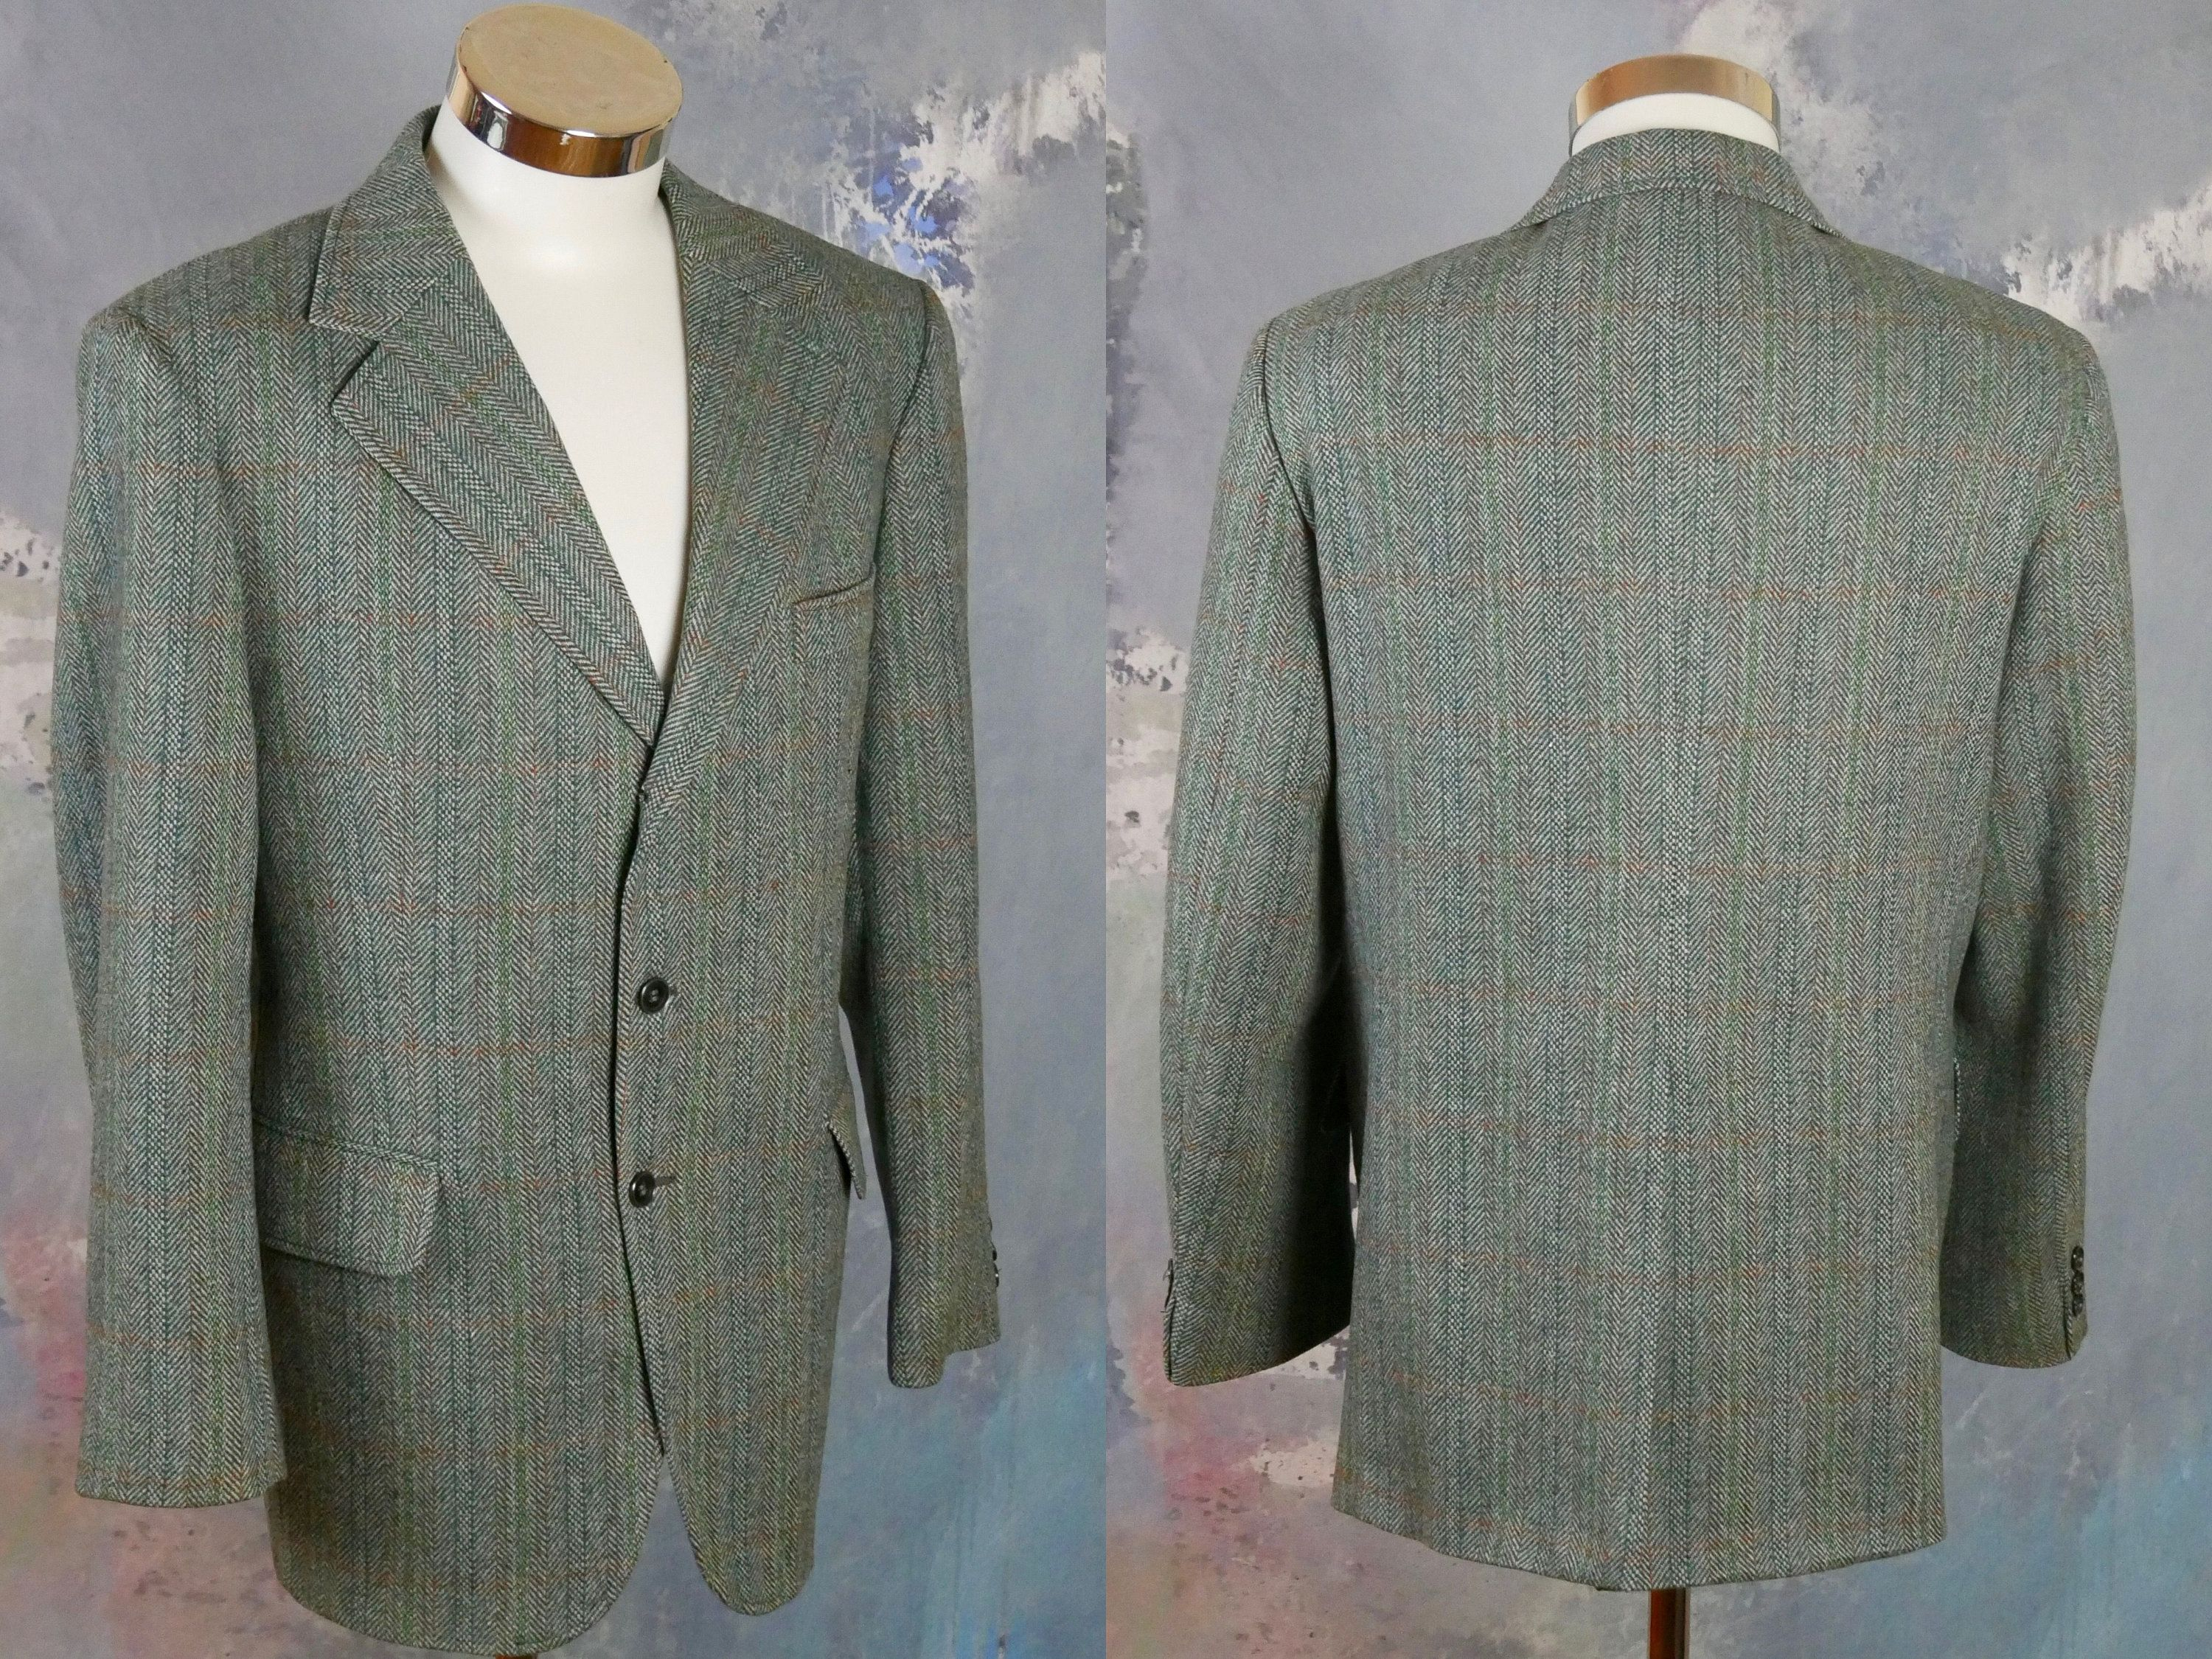 Men S Tweed Blazer 1990s European Vintage Single Breasted Etsy Tweed Blazer Blazer Herringbone Jacket